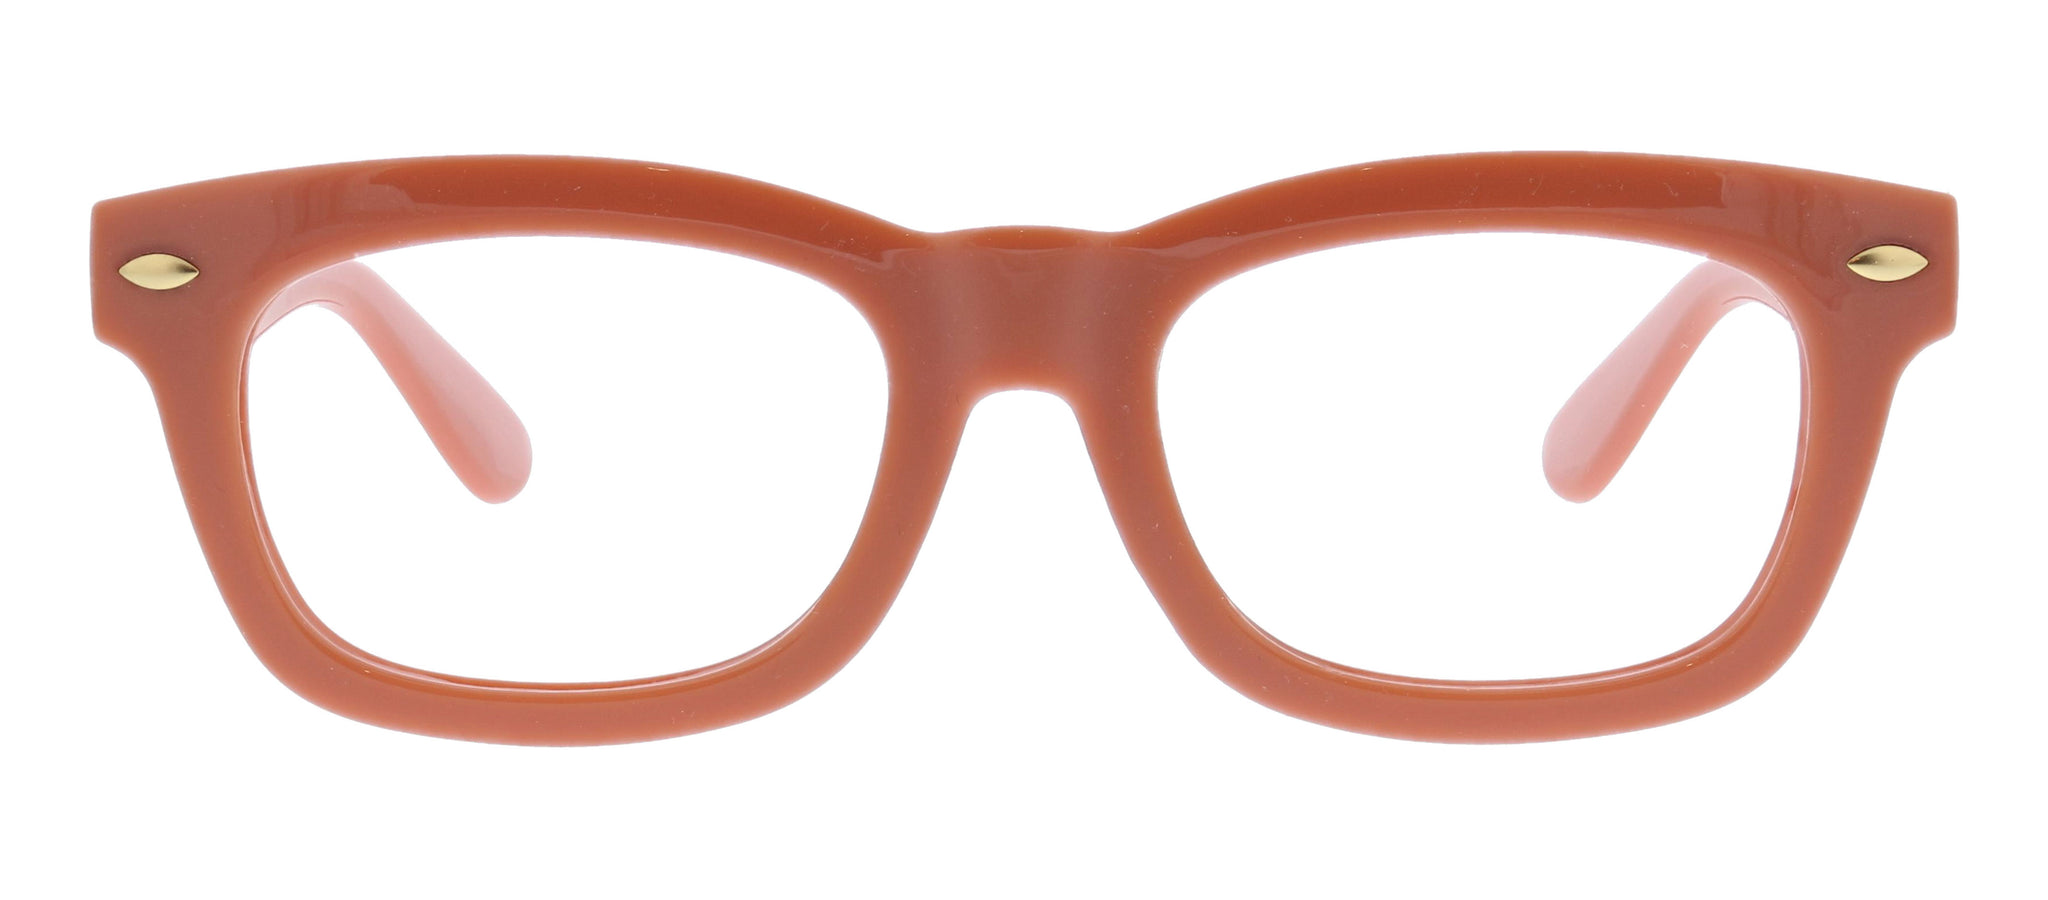 Lois rust soft square blue light reading glasses by Peepers front view